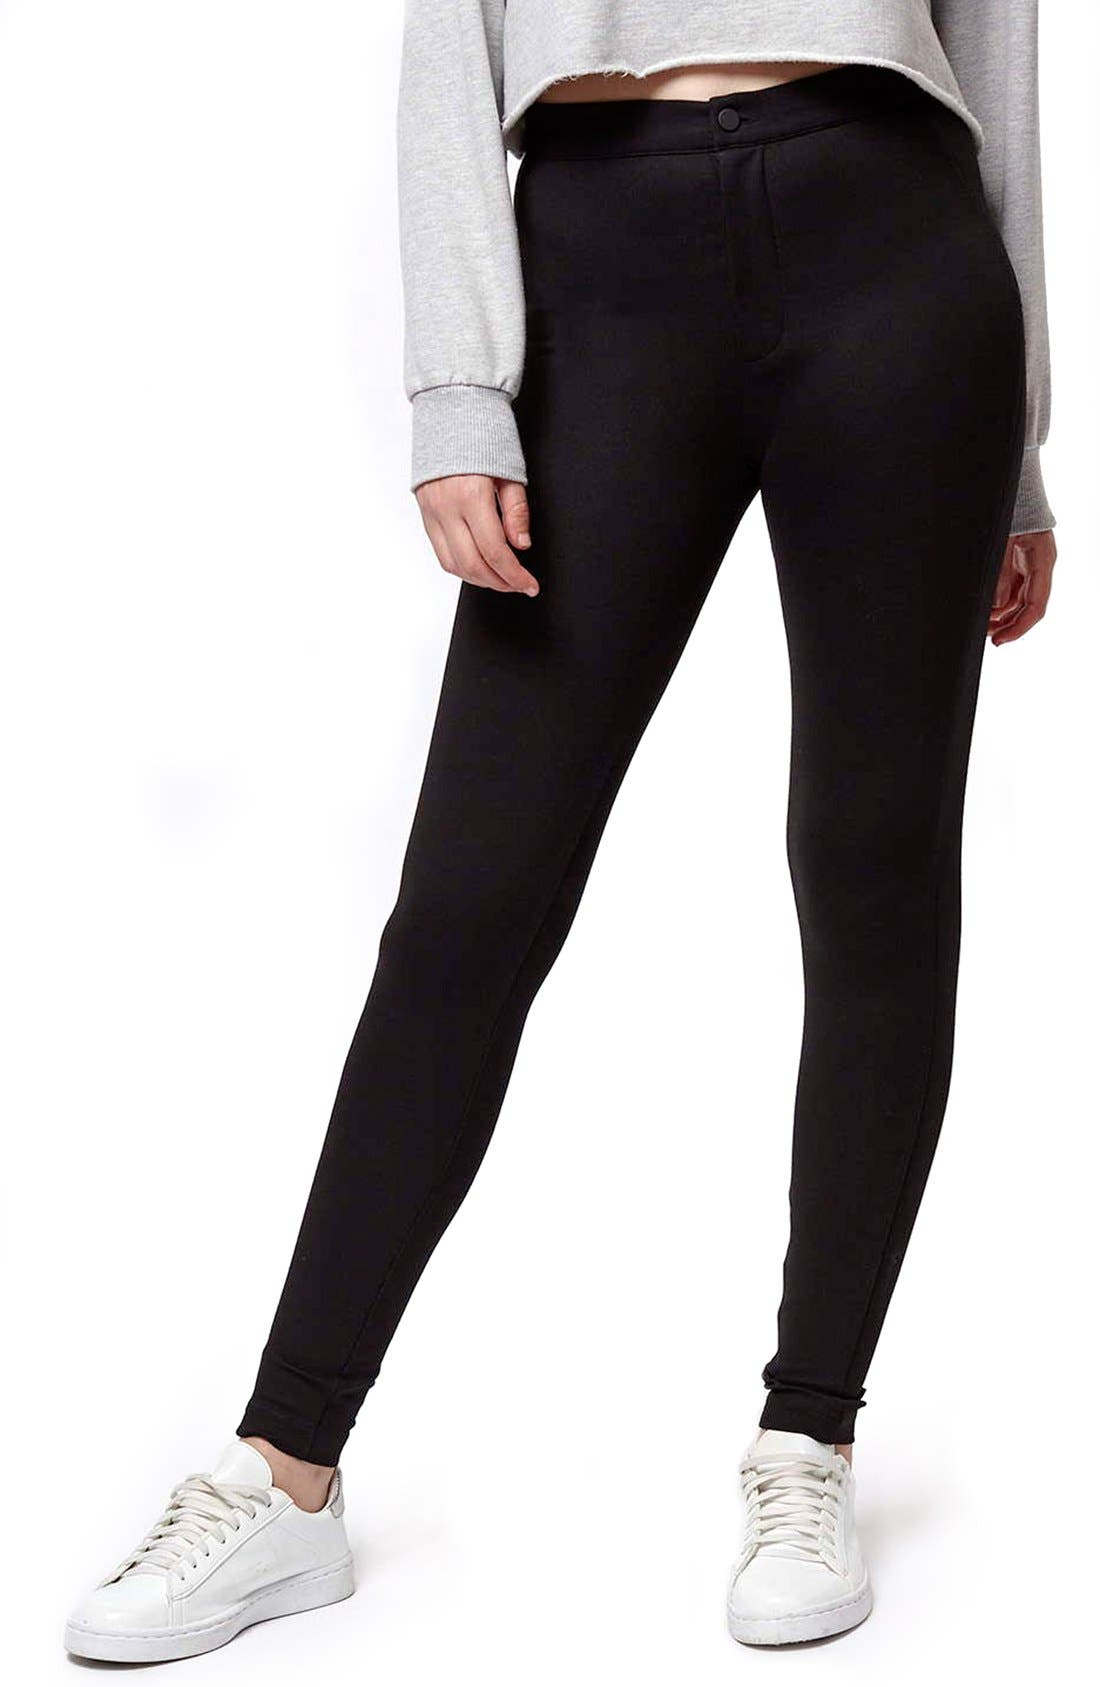 Alternate Image 1 Selected - Topshop Seamed Ponte Trouser Leggings